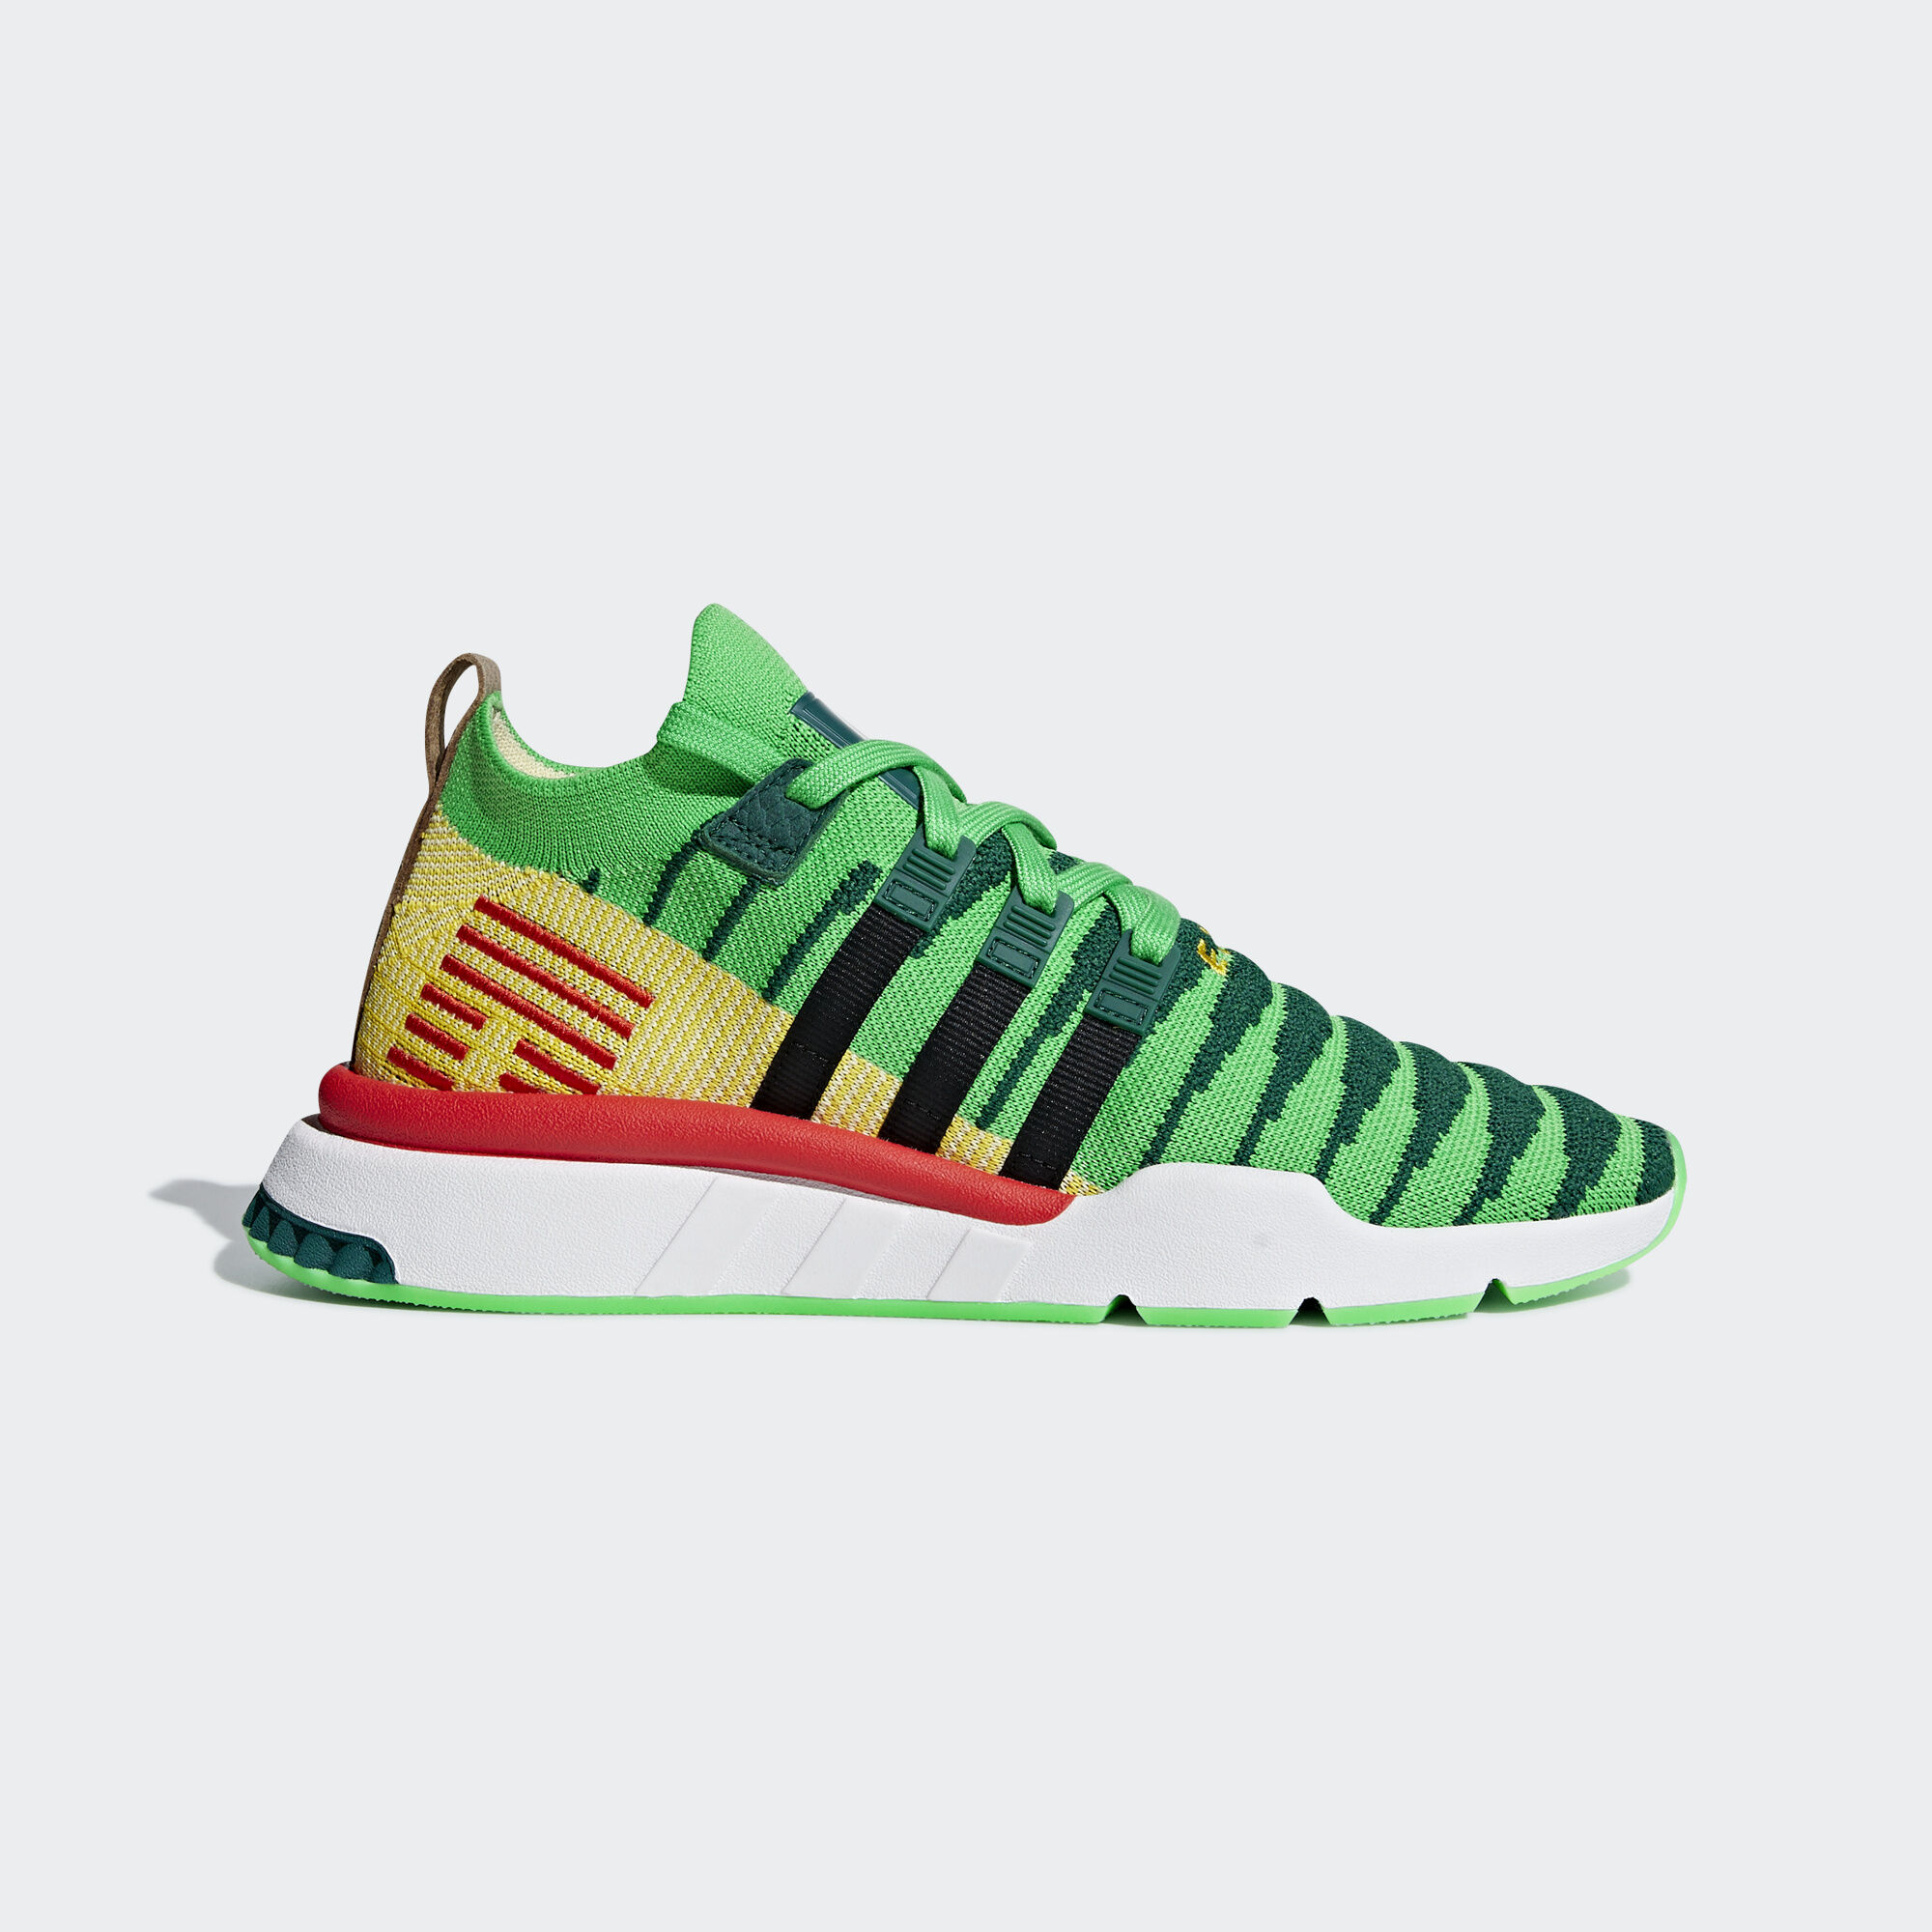 new concept d4f75 69538 adidas - Dragonball Z EQT Support Mid ADV Primeknit Shoes Collegiate Green   Core Black . Originals